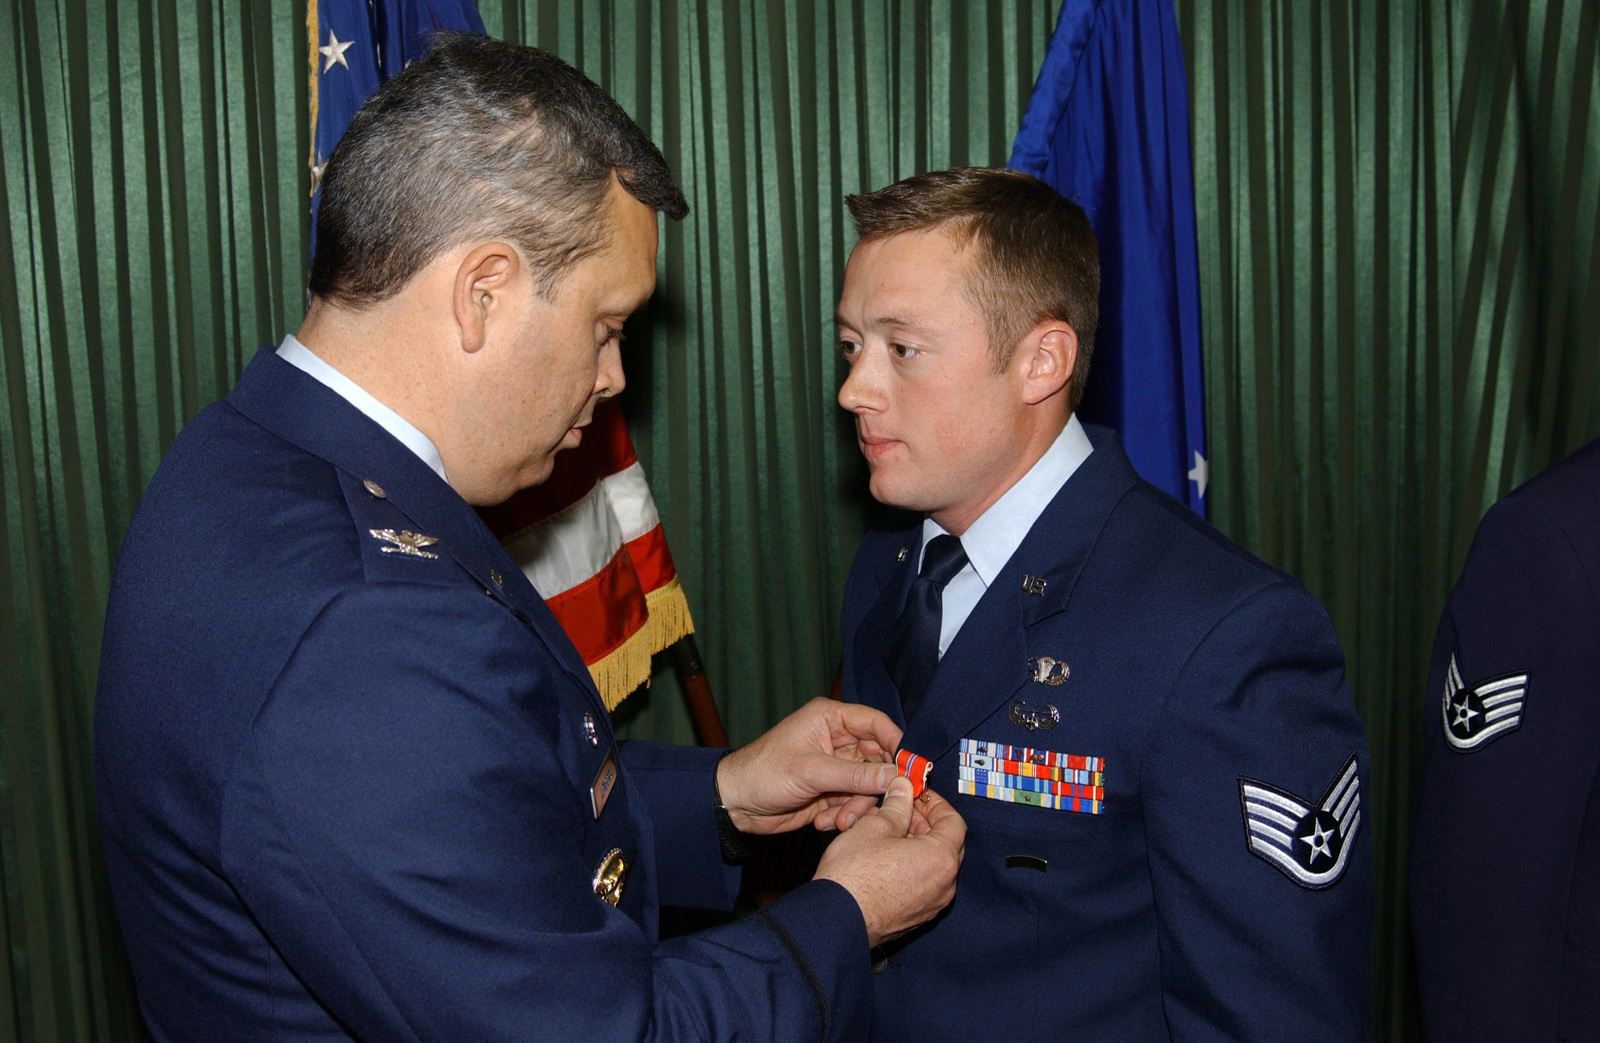 US Air Force (USAF) Colonel (COL) Michael A Longoria (left), Commander, 18th Air Support Operations Group (ASOG), Pope Air Force Base (AFB), North Carolina (NC), pins the Bronze Star on USAF STAFF Sergeant (SSGT) Abel S. Martens, 17th Air Support Operations Squadron (ASOS), Hunter Army Airfield (AAF), Georgia (GA). They awards ceremony was held at the Hunter Club on the base